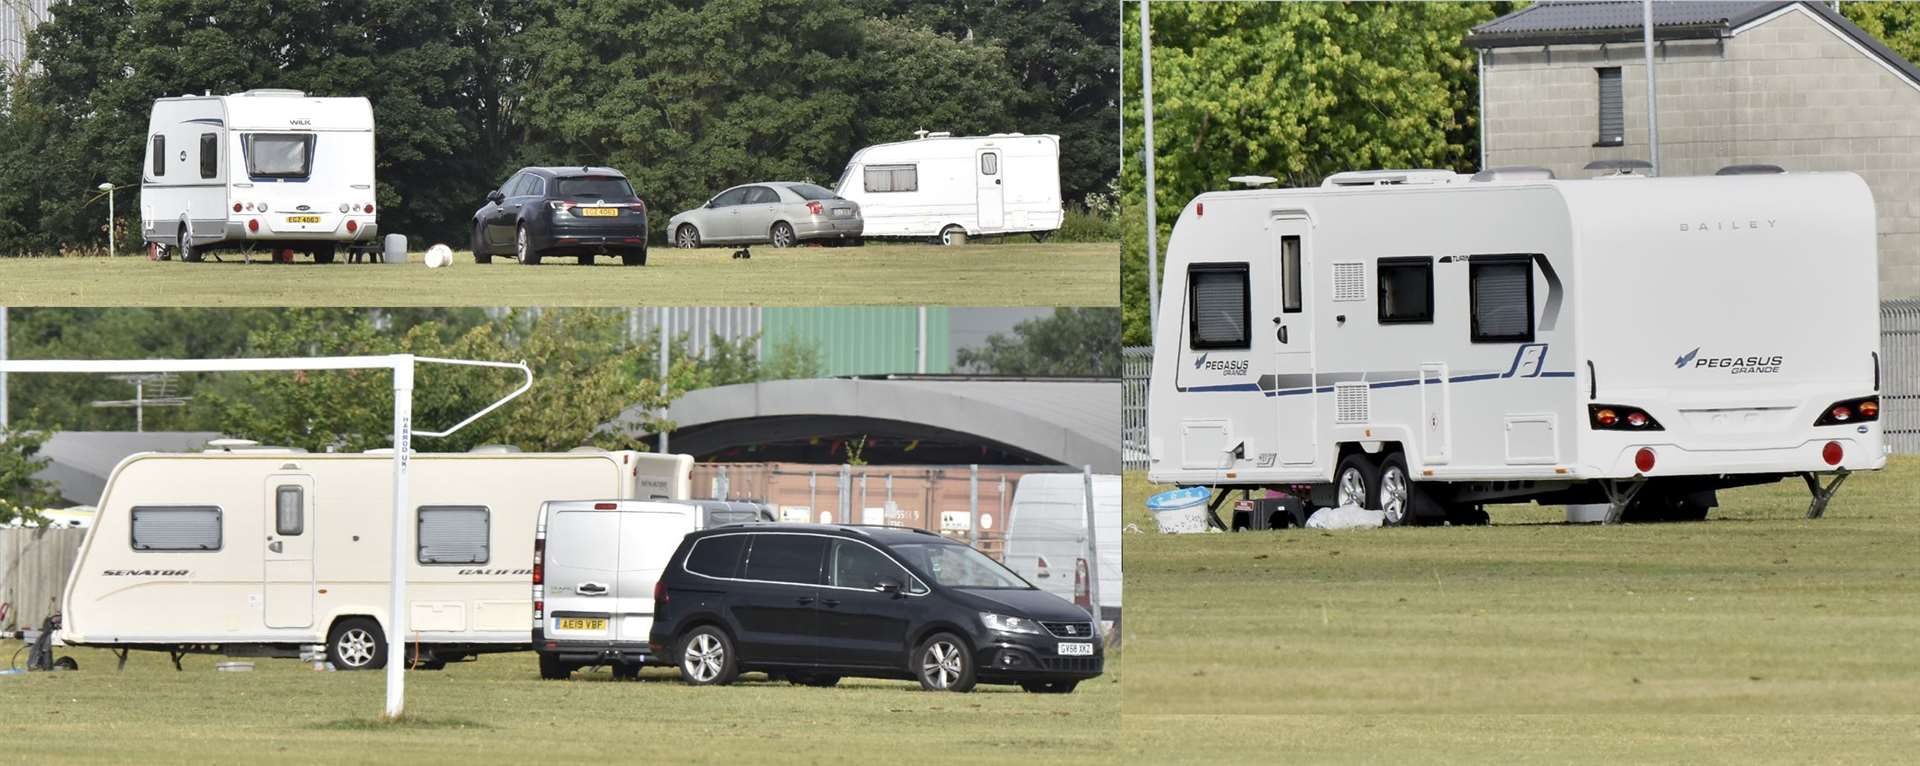 Travellers at Newmarket's George Lambton Playing Fields (14105901)